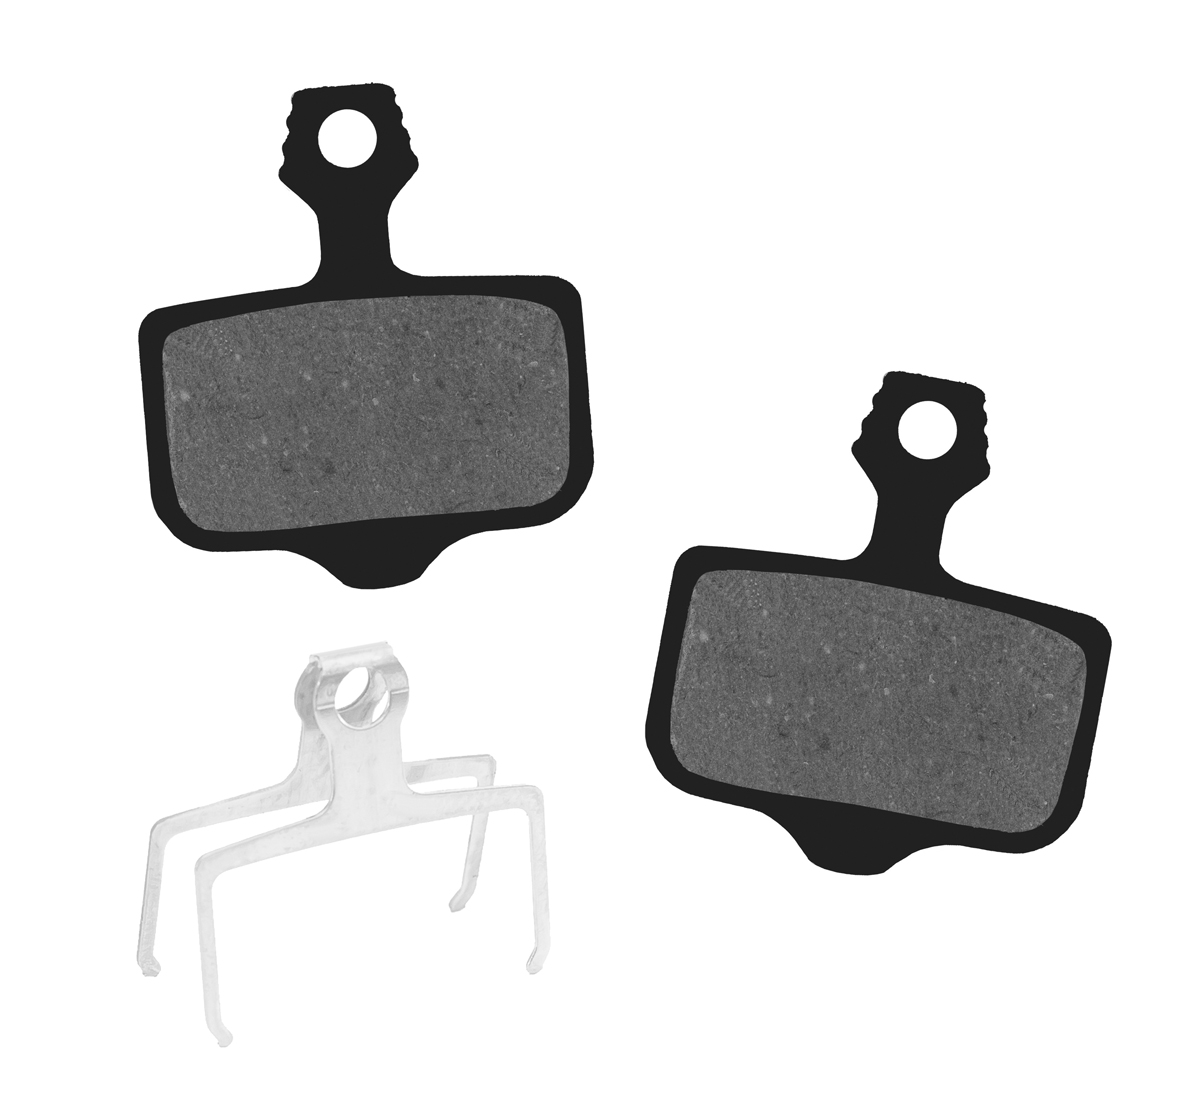 Trivio Avid Elixir Brake Pad Set MTB Disc - Black